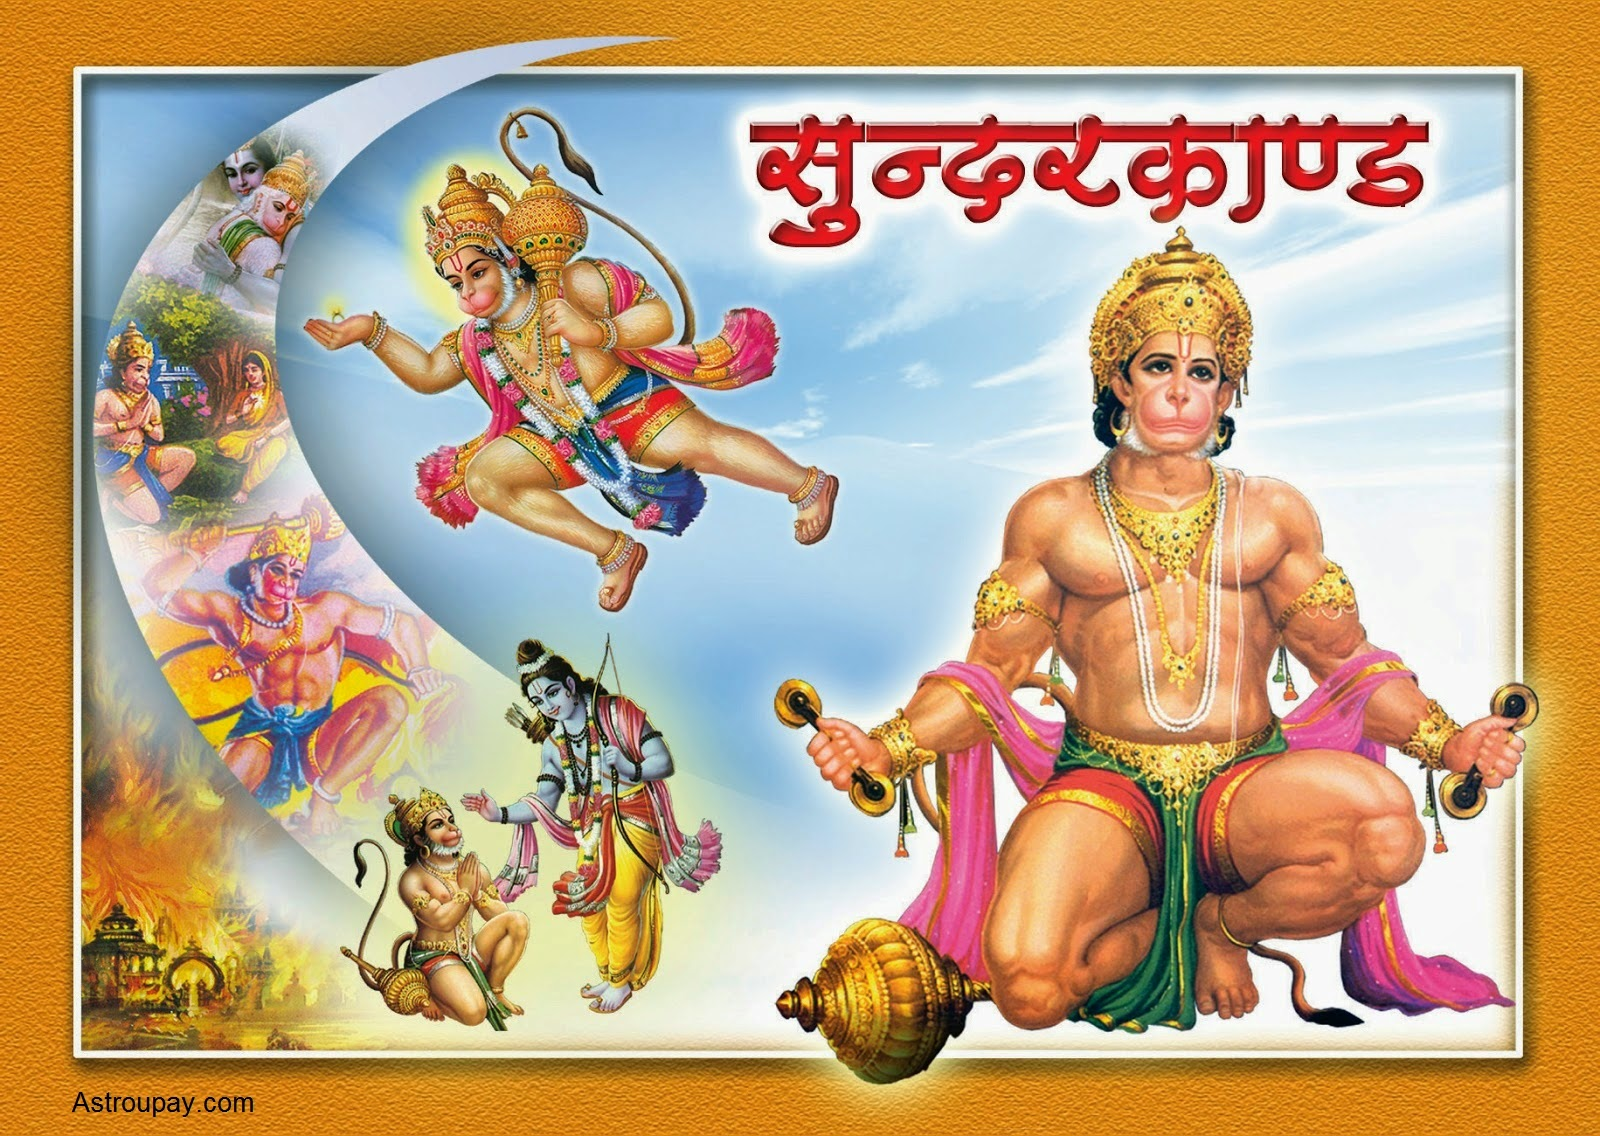 Importance of Sunderkand